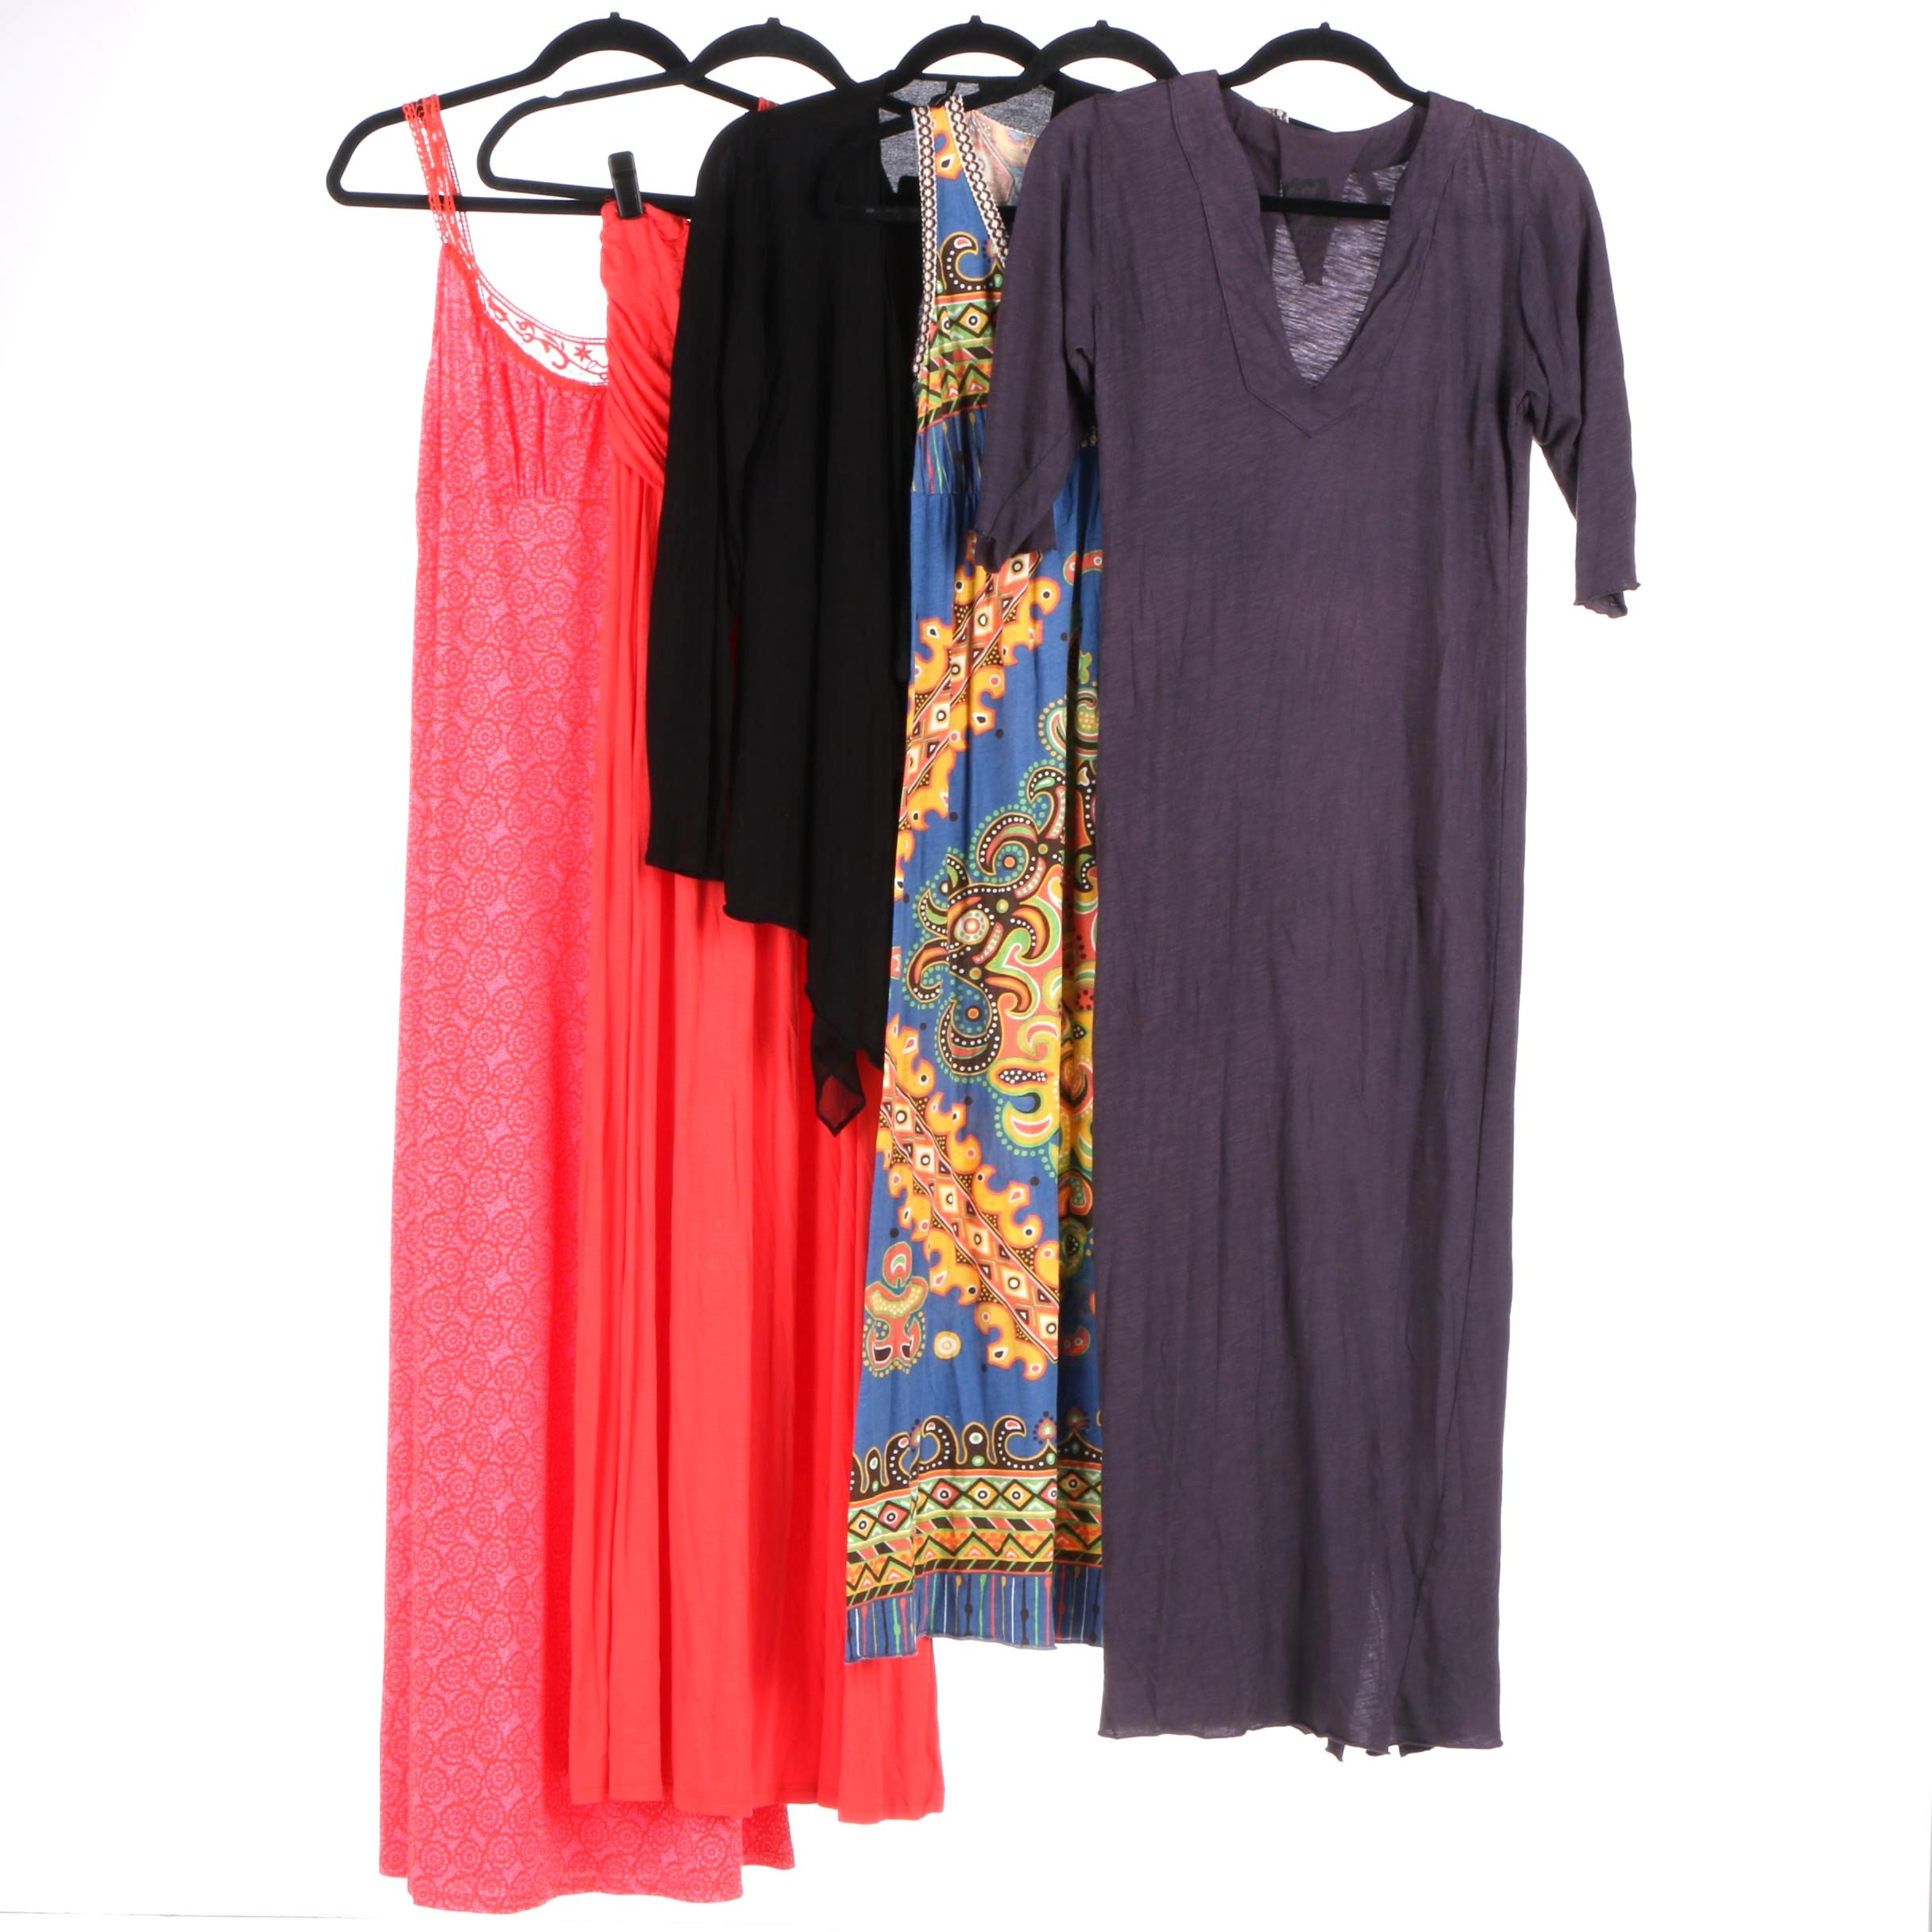 Collection of Women's Dresses and Cardigan Including Lucky Brand